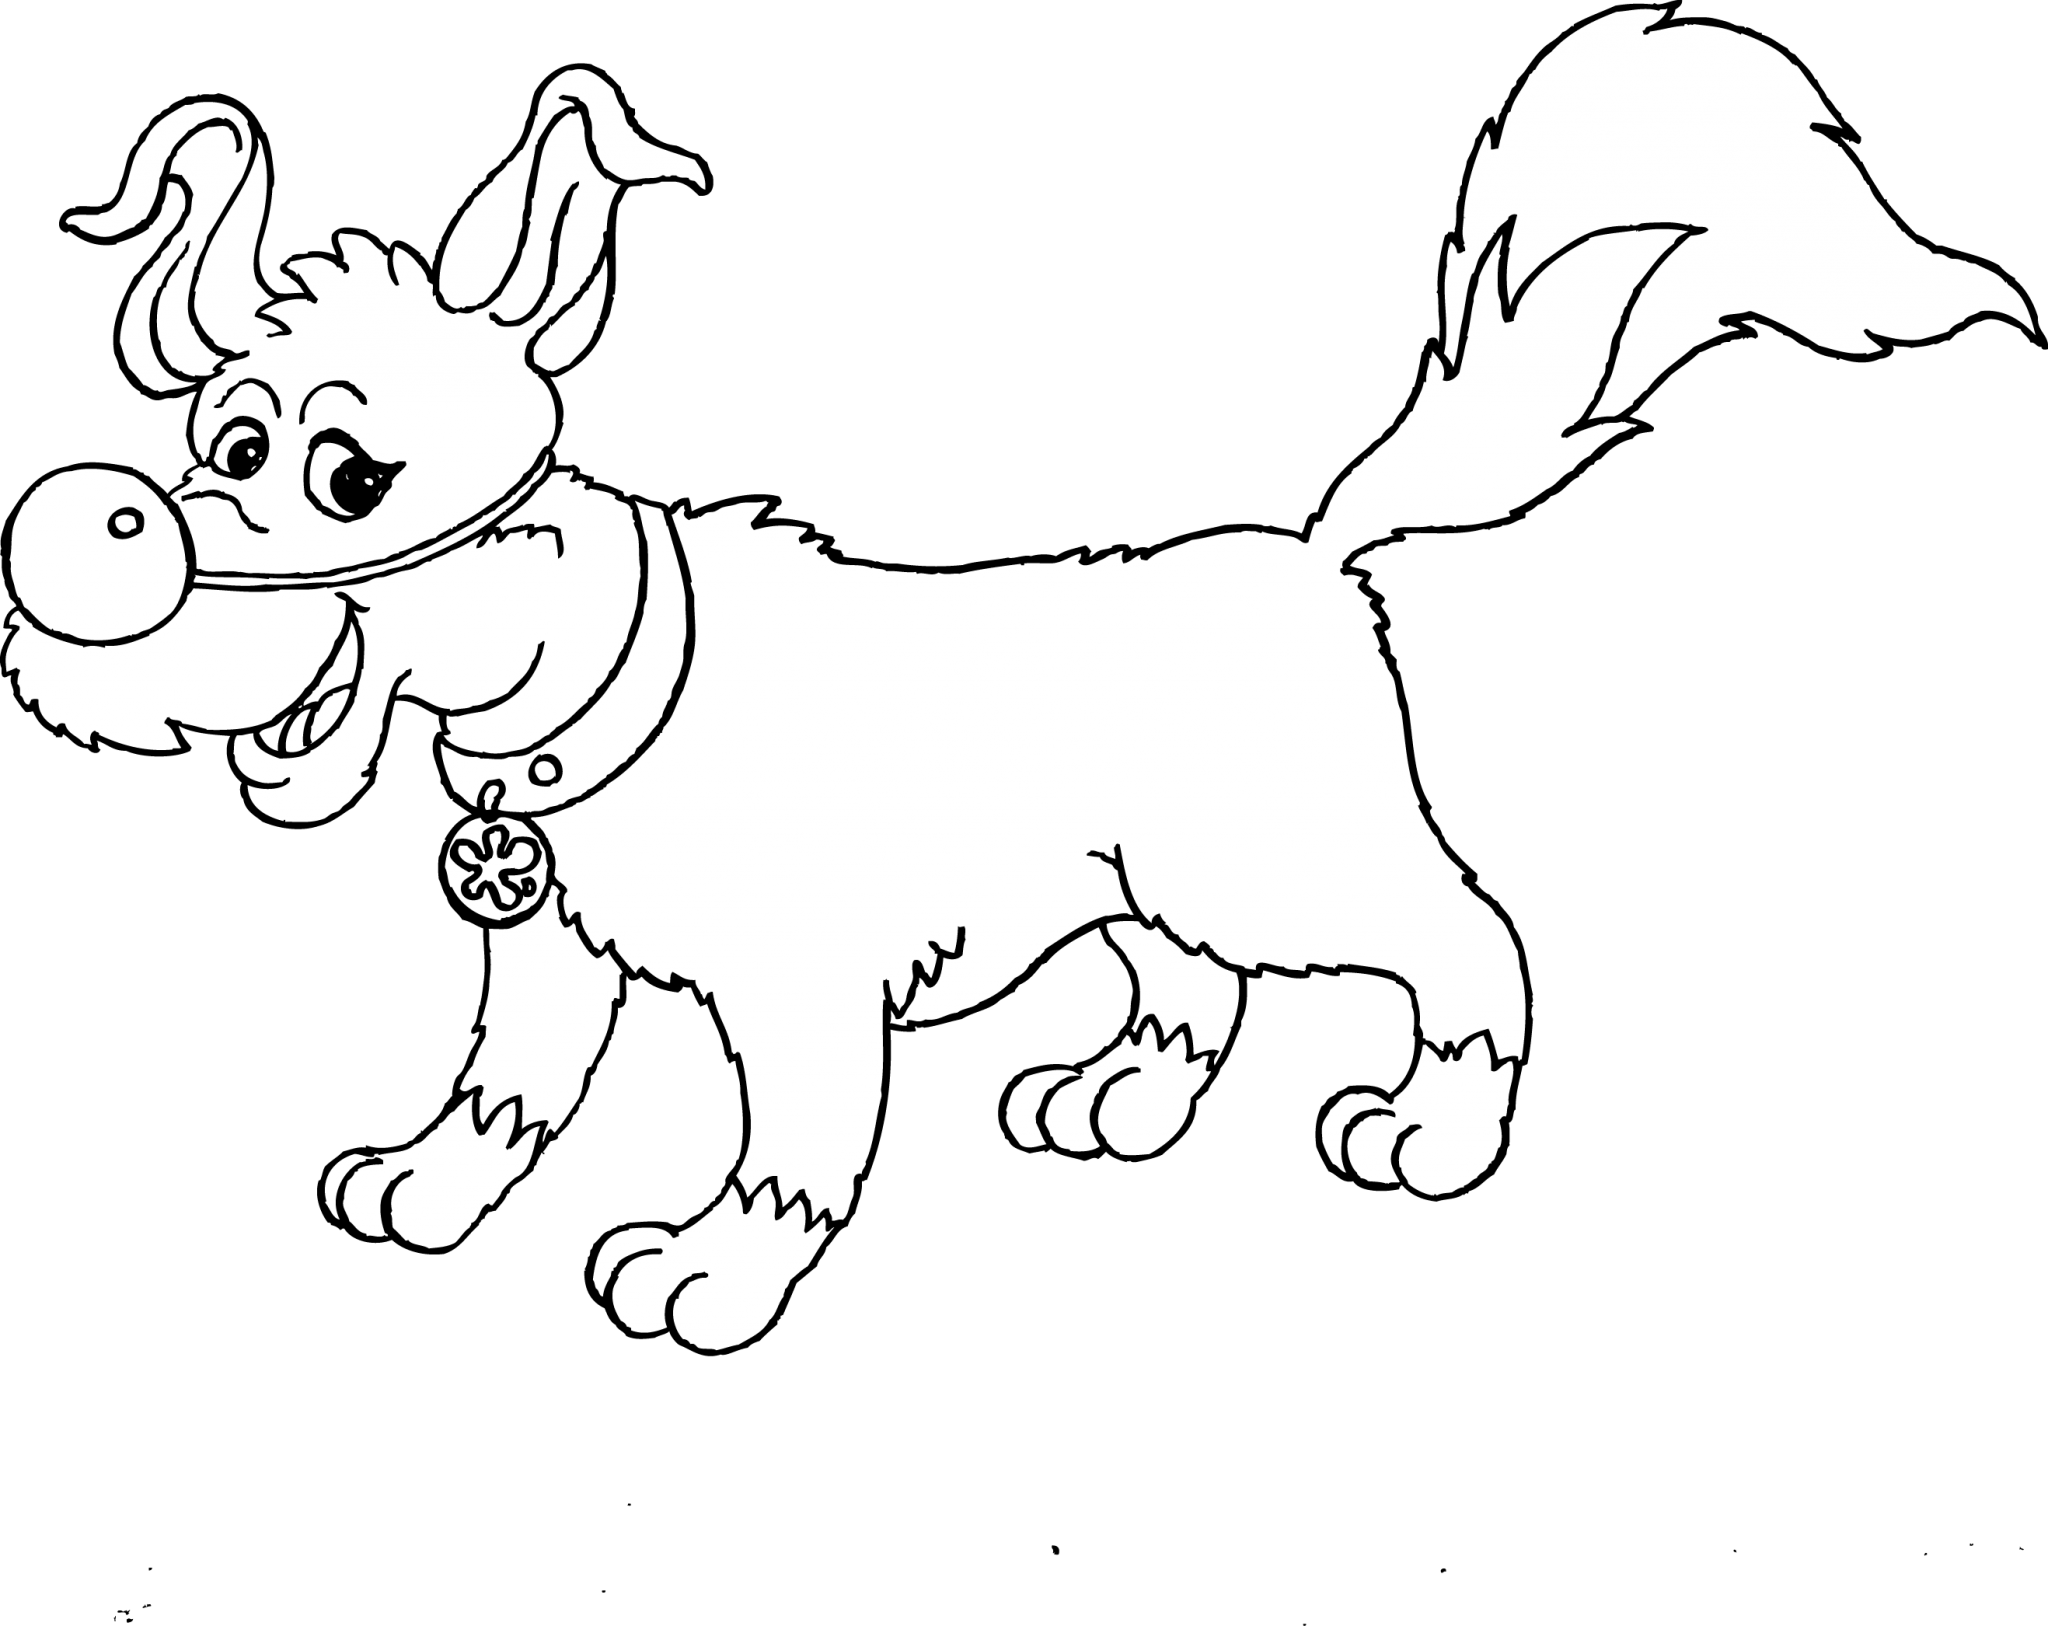 Circus dog circus skills to colour in